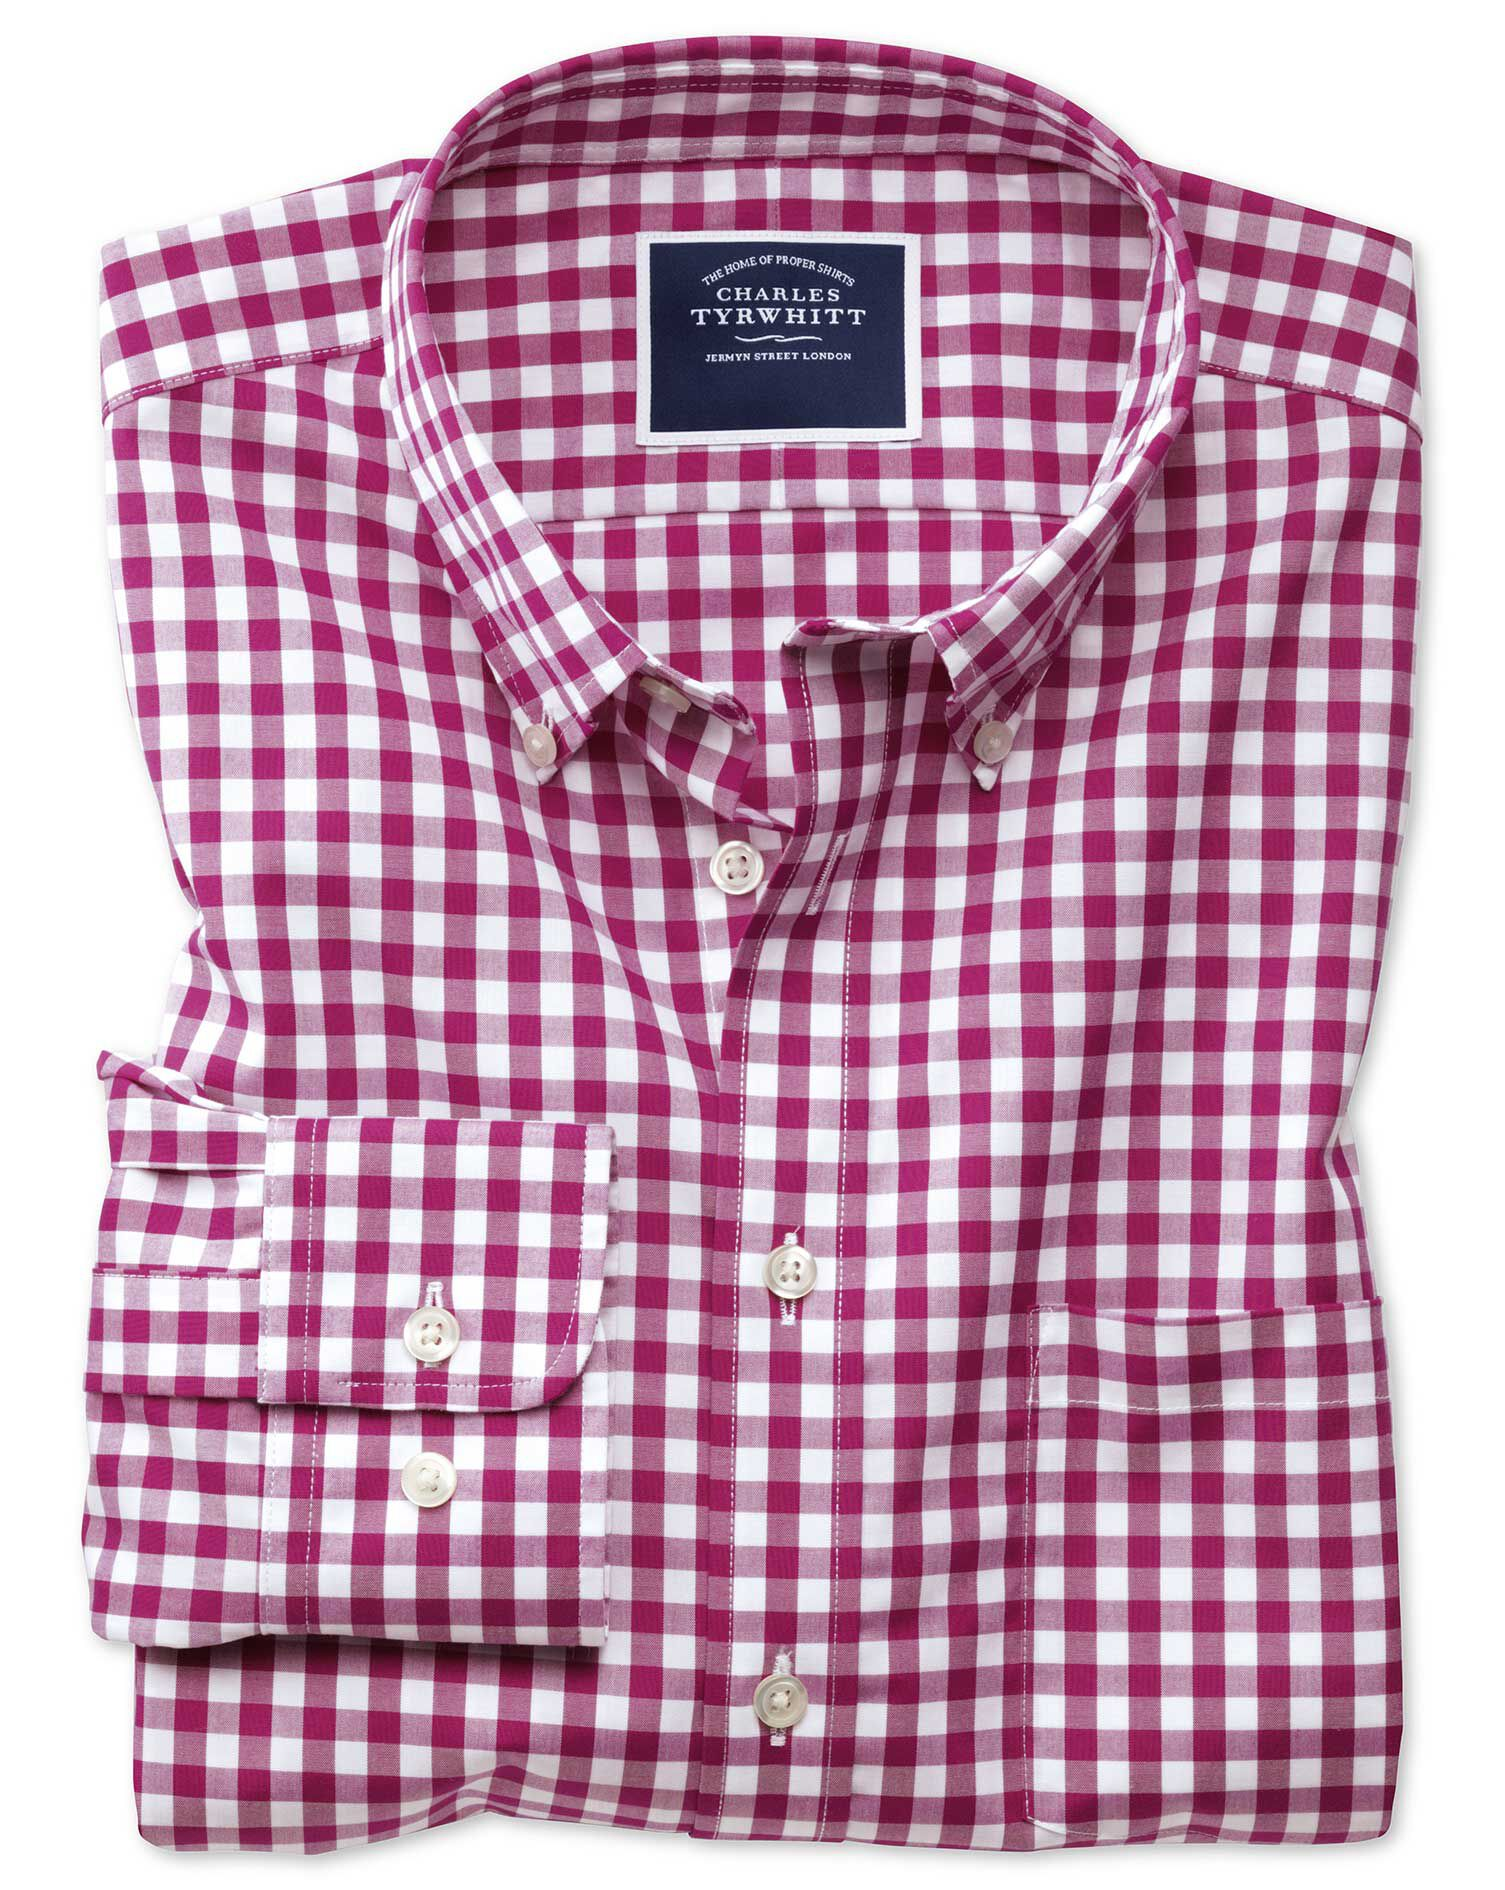 Extra Slim Fit Button-Down Non-Iron Poplin Red Gingham Cotton Shirt Single Cuff Size Small by Charle